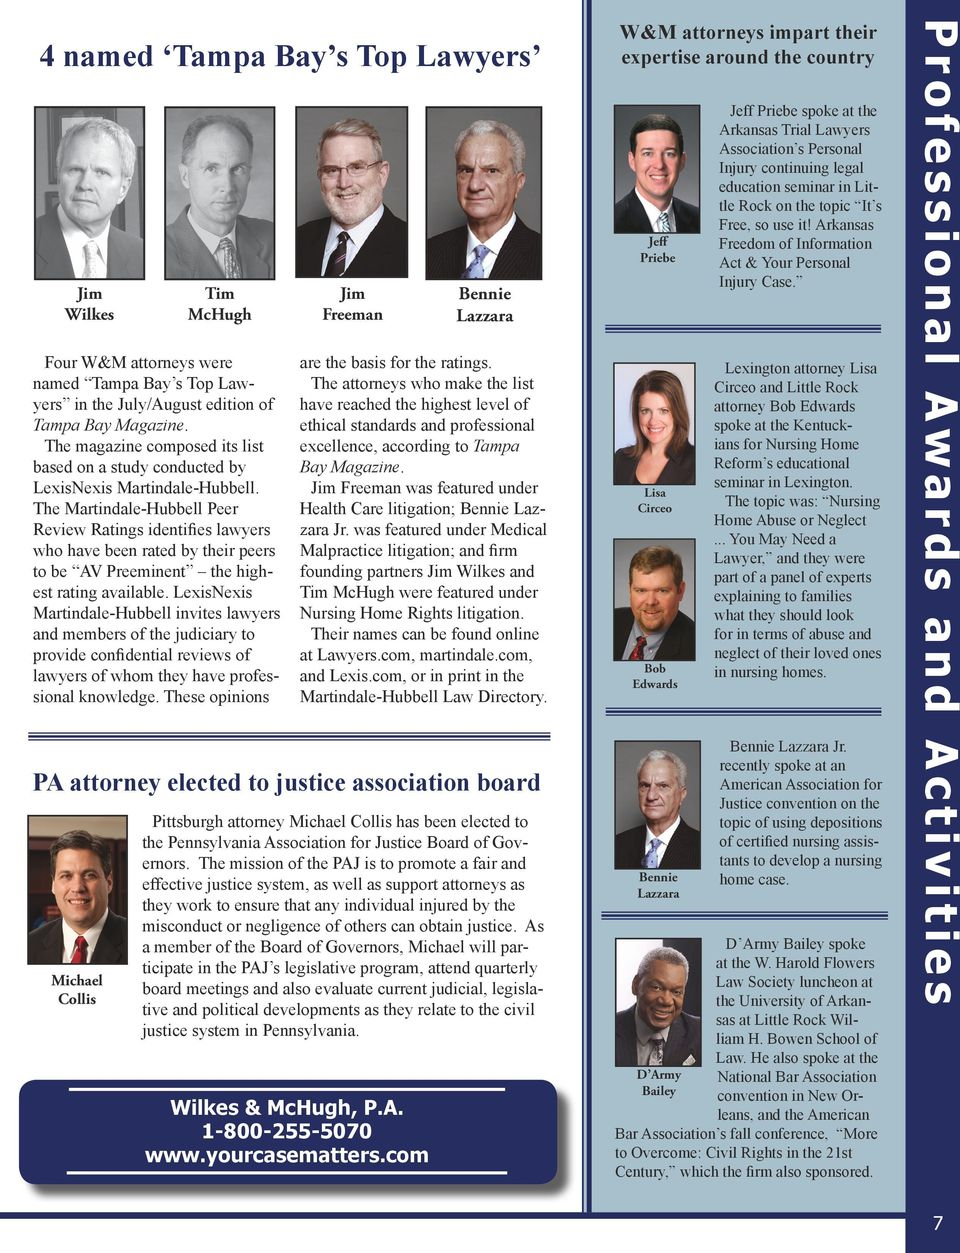 Arkansas Freedom of Information Act & Your Personal Injury Case. Four W&M attorneys were named Tampa Bay s Top Lawyers in the July/August edition of Tampa Bay Magazine.